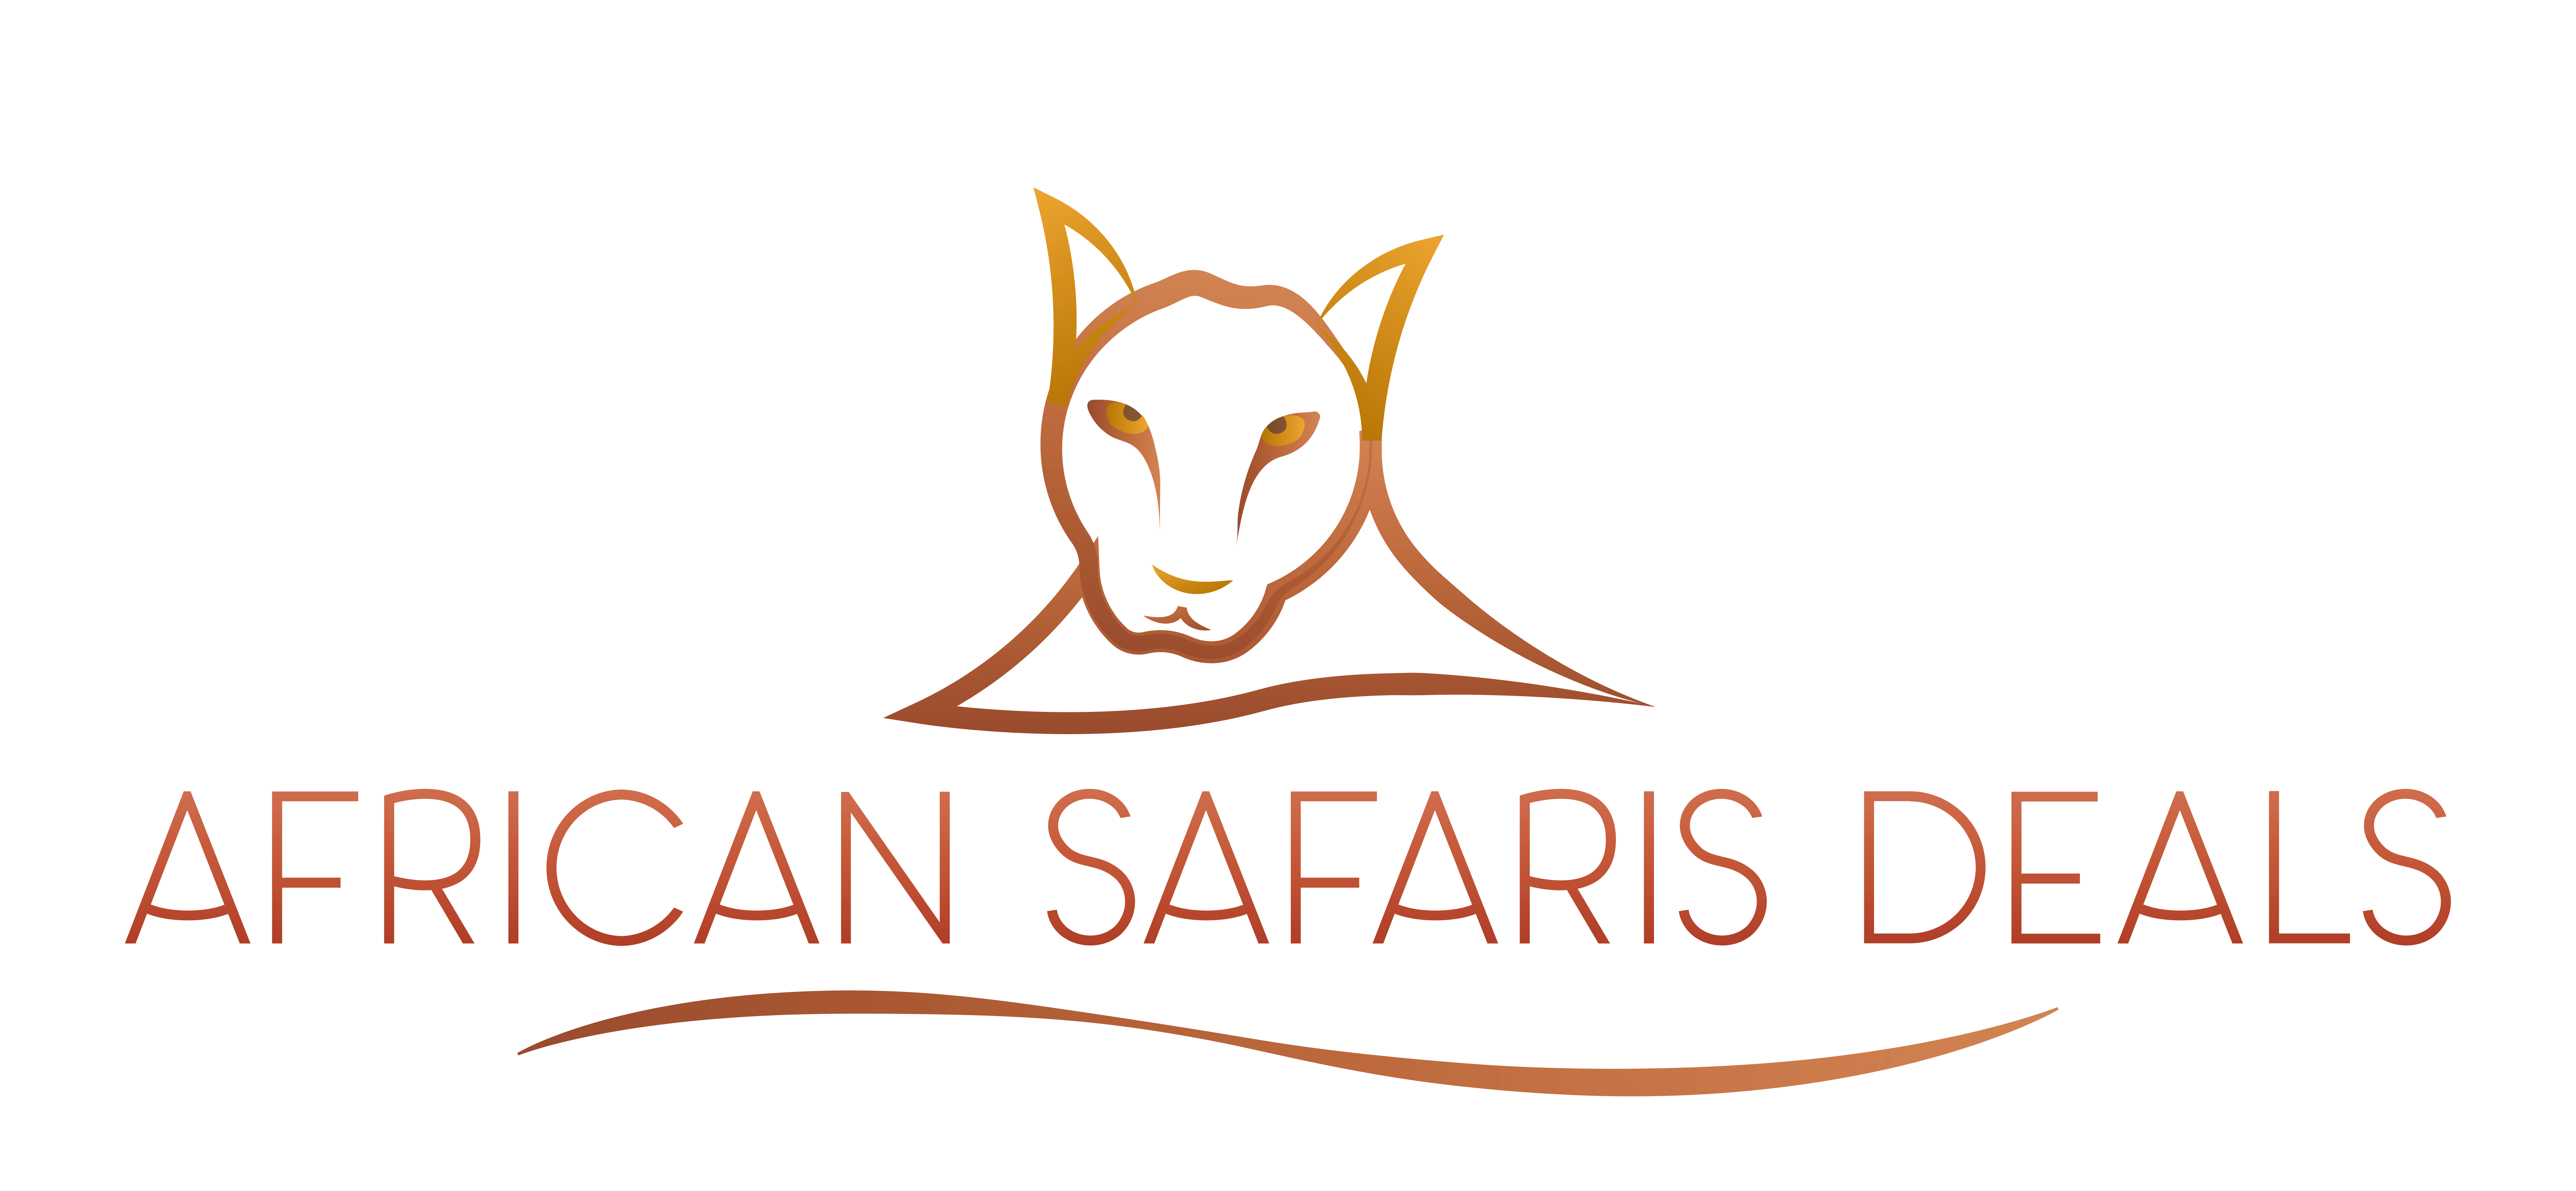 African Safaris Deals